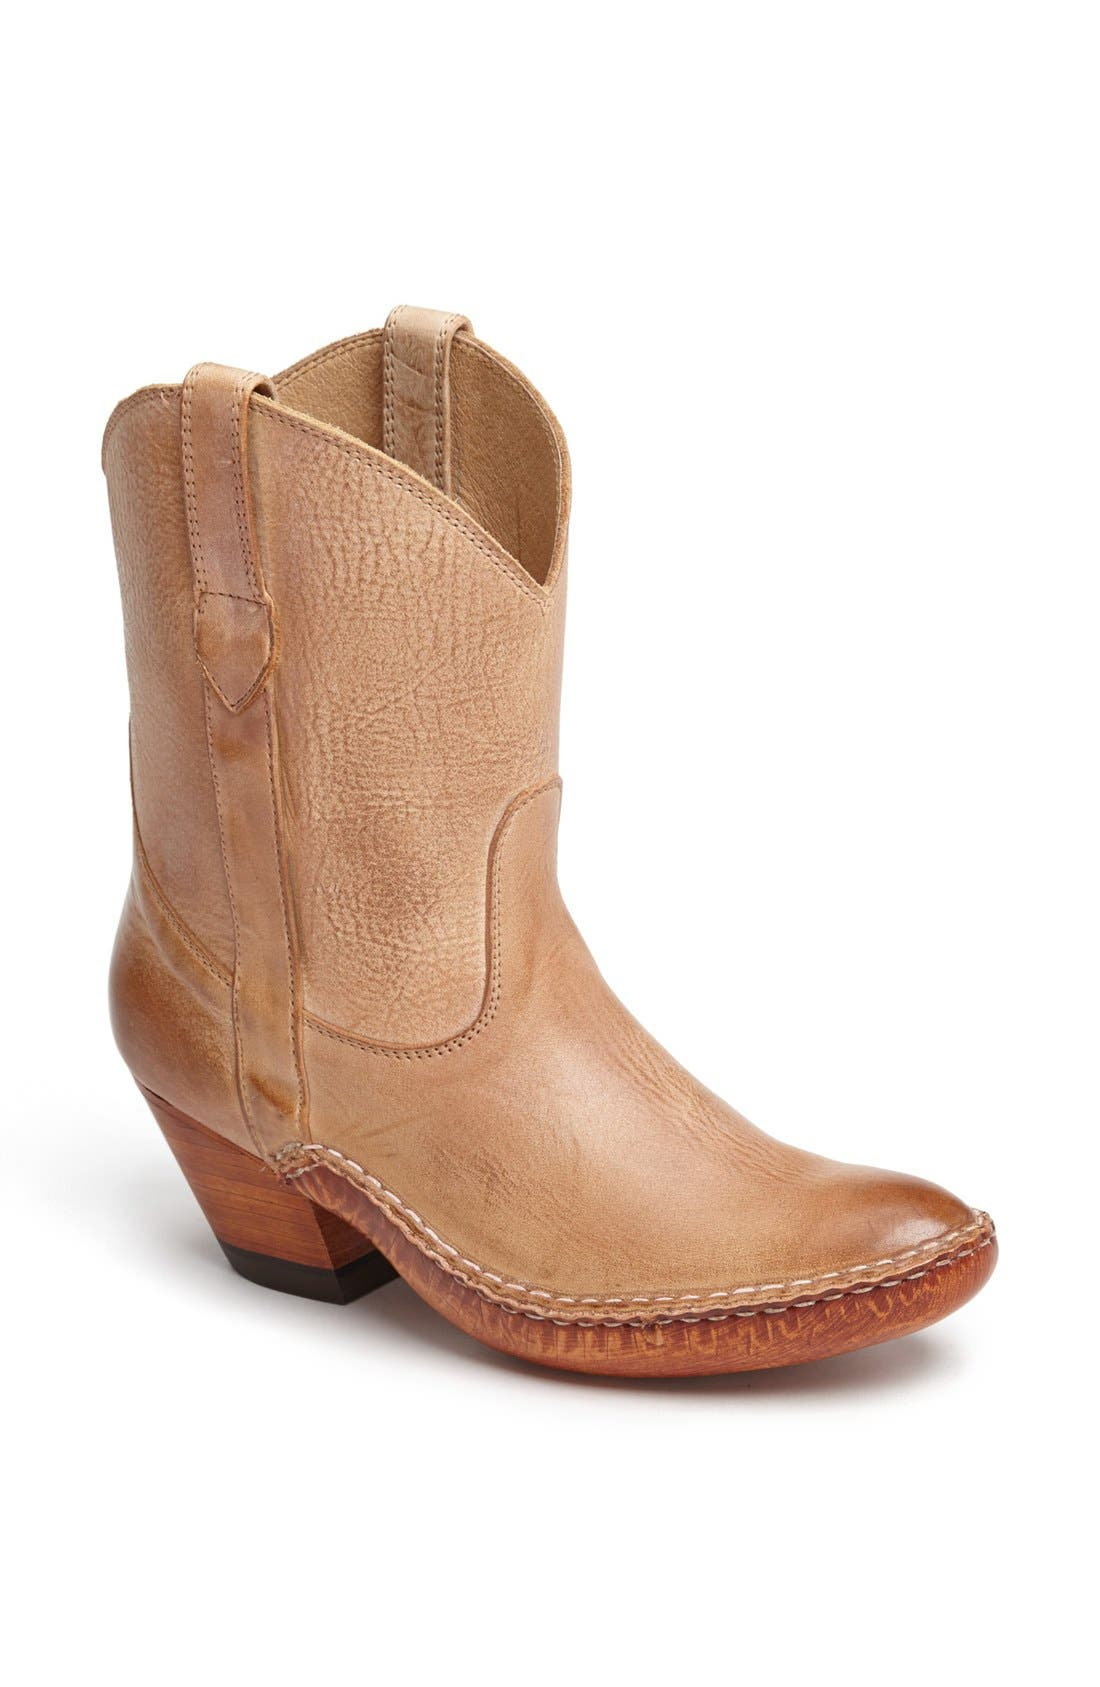 Alternate Image 1 Selected - Ariat 'Stardust' Boot